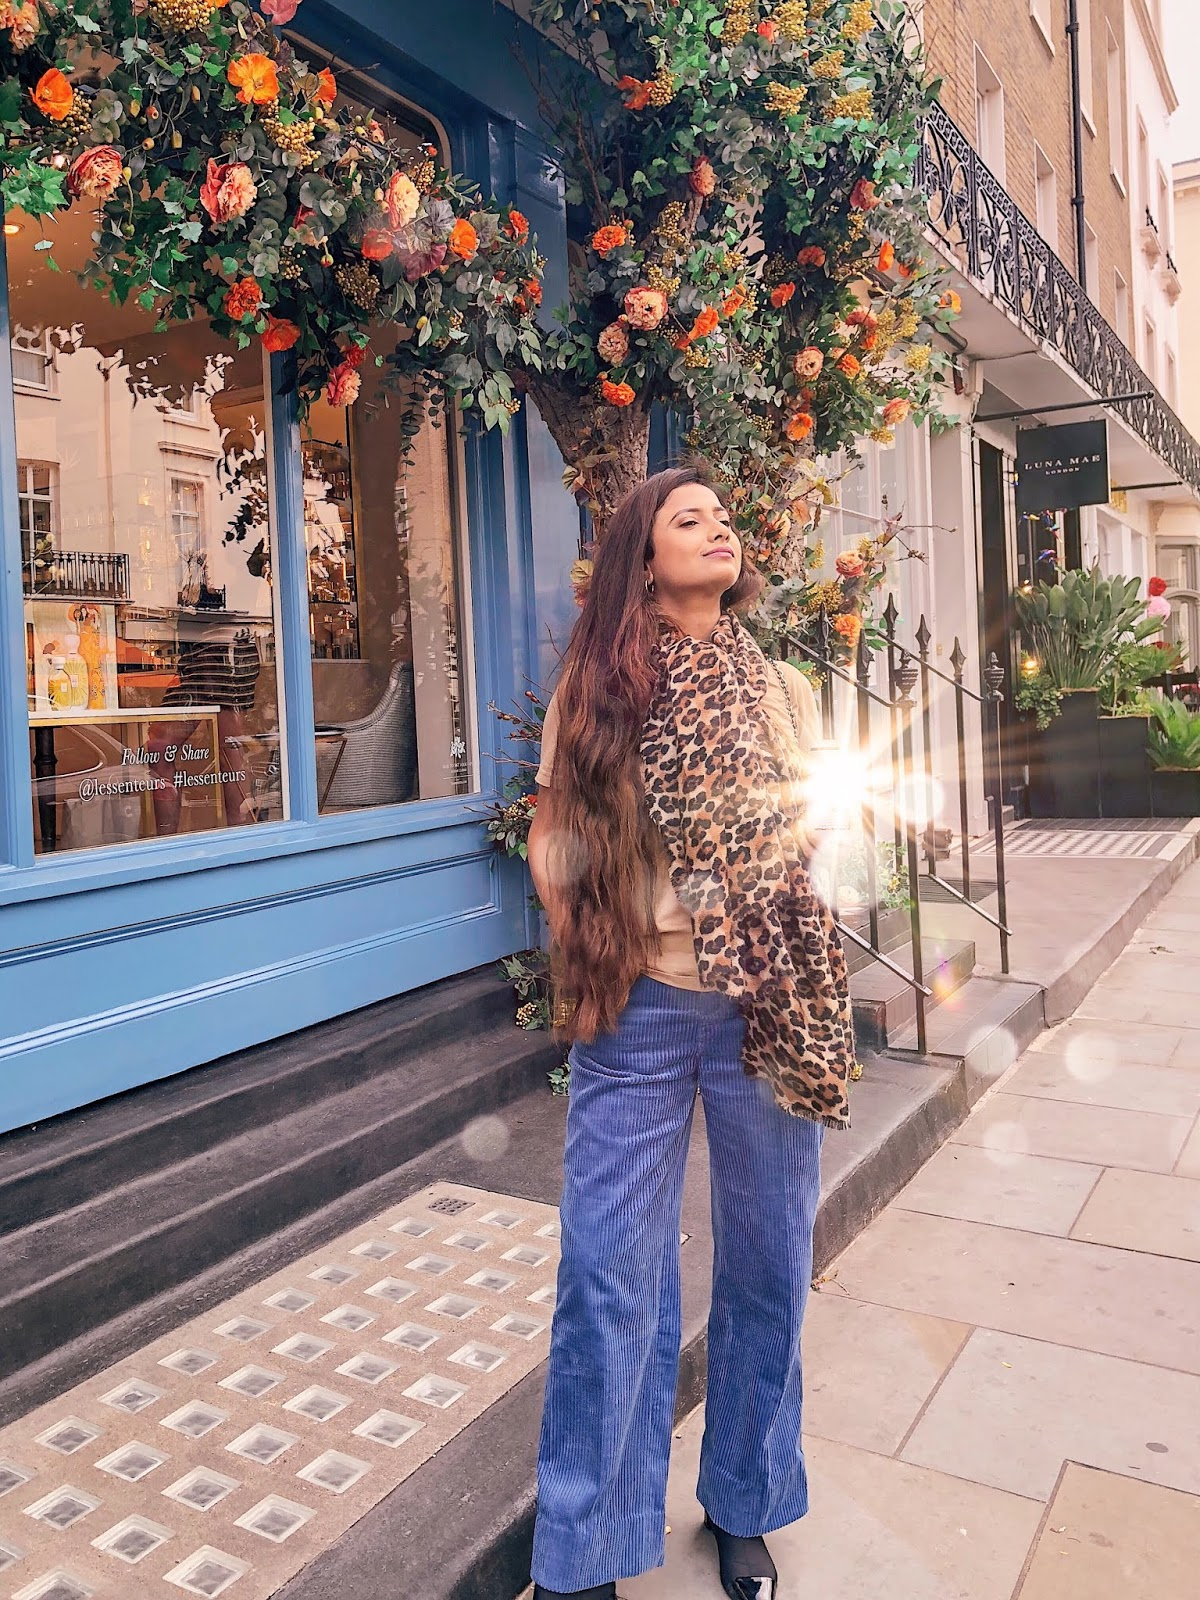 london instagram spot, autumn in london, indian blogger, london blog, belgravia